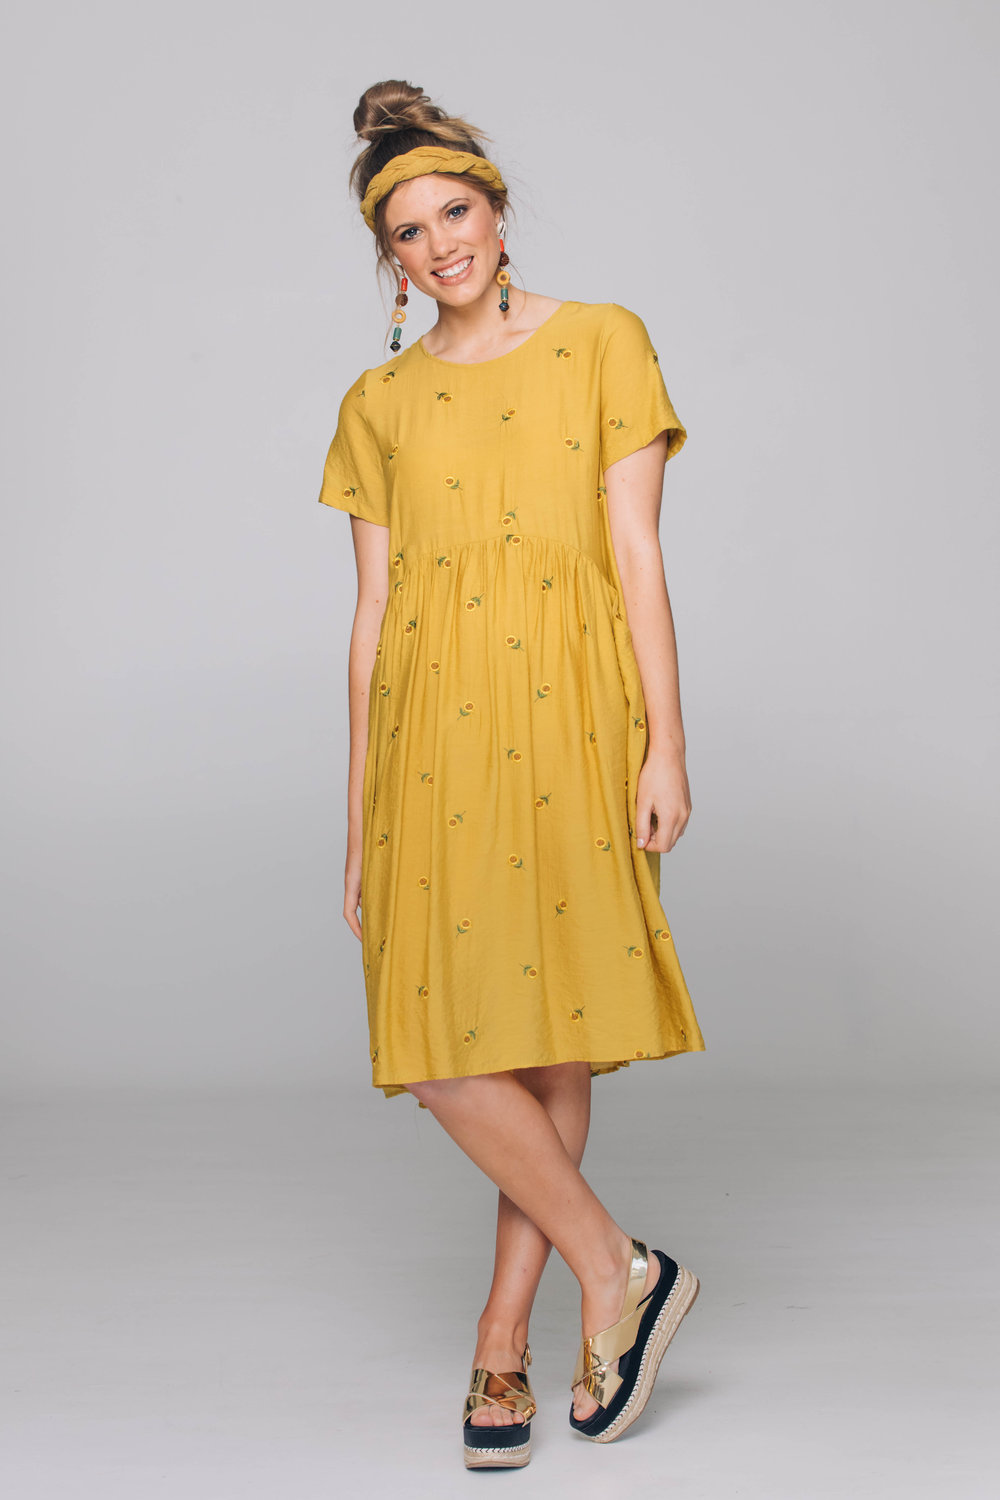 6177T Venice Dress, Suzu Sunflower Mustard